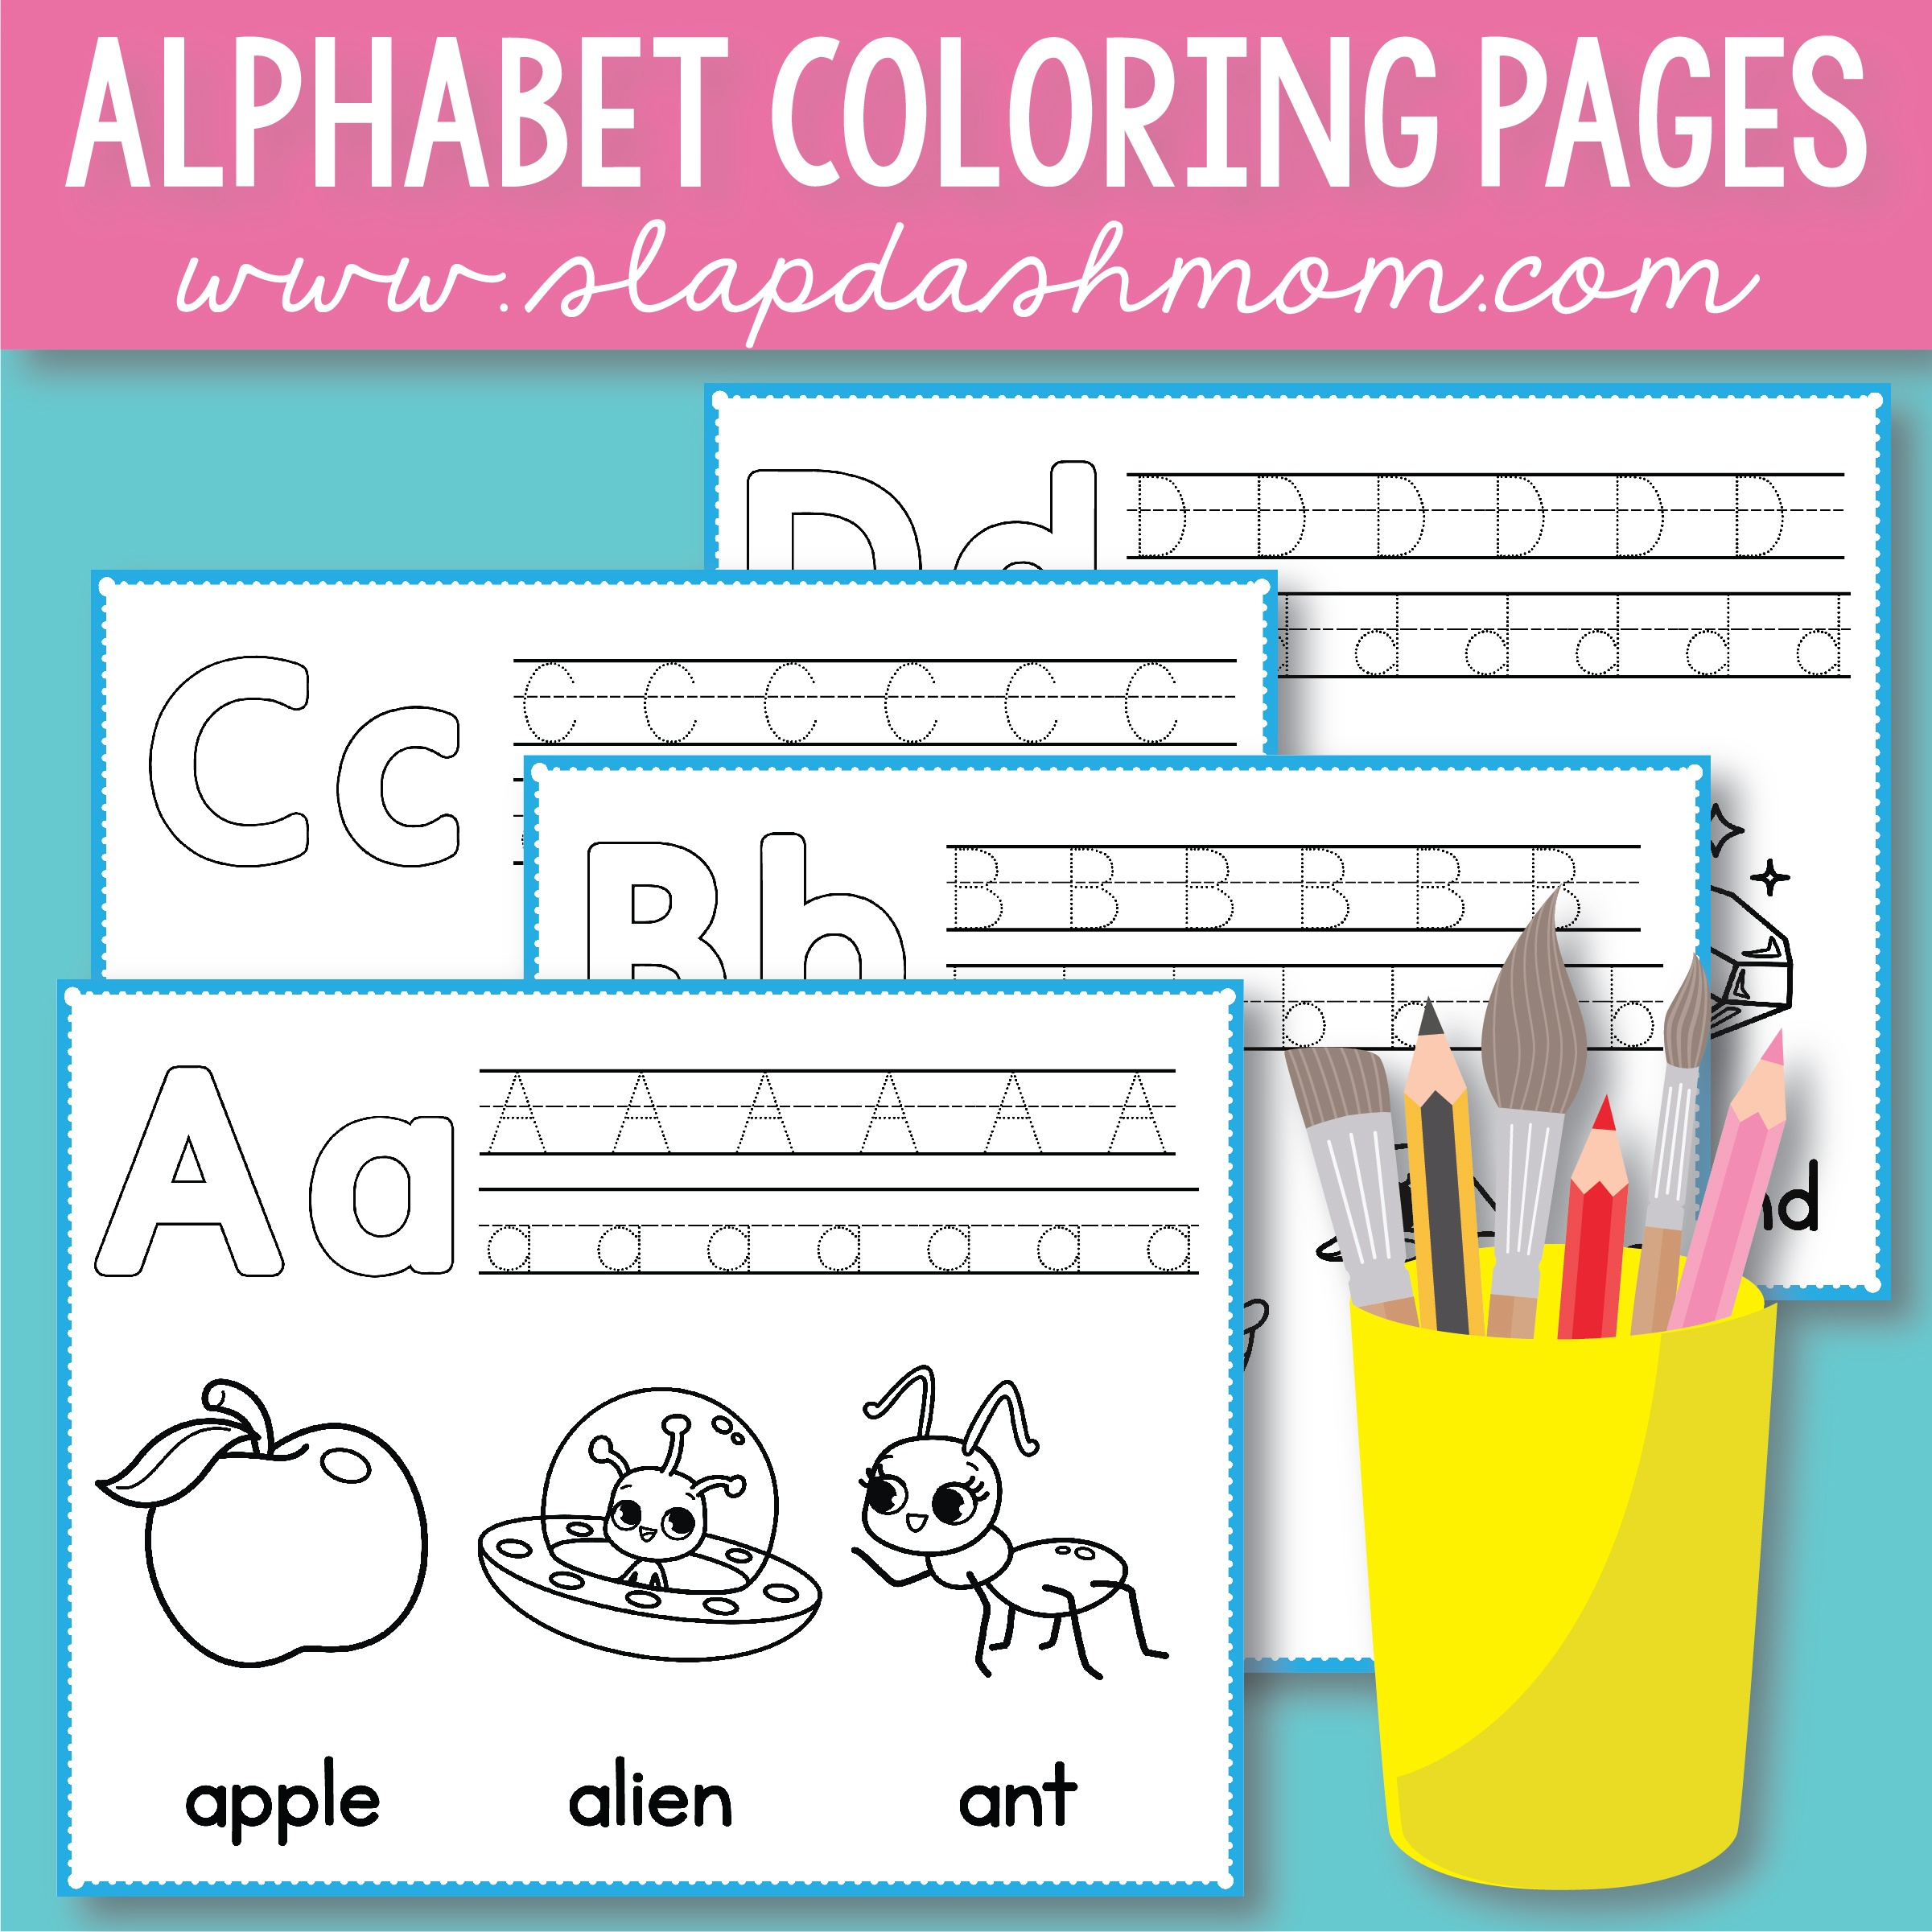 Free Alphabet Coloring Pages – Preschool Printables – Slap Dash Mom - Free Printable Preschool Alphabet Coloring Pages